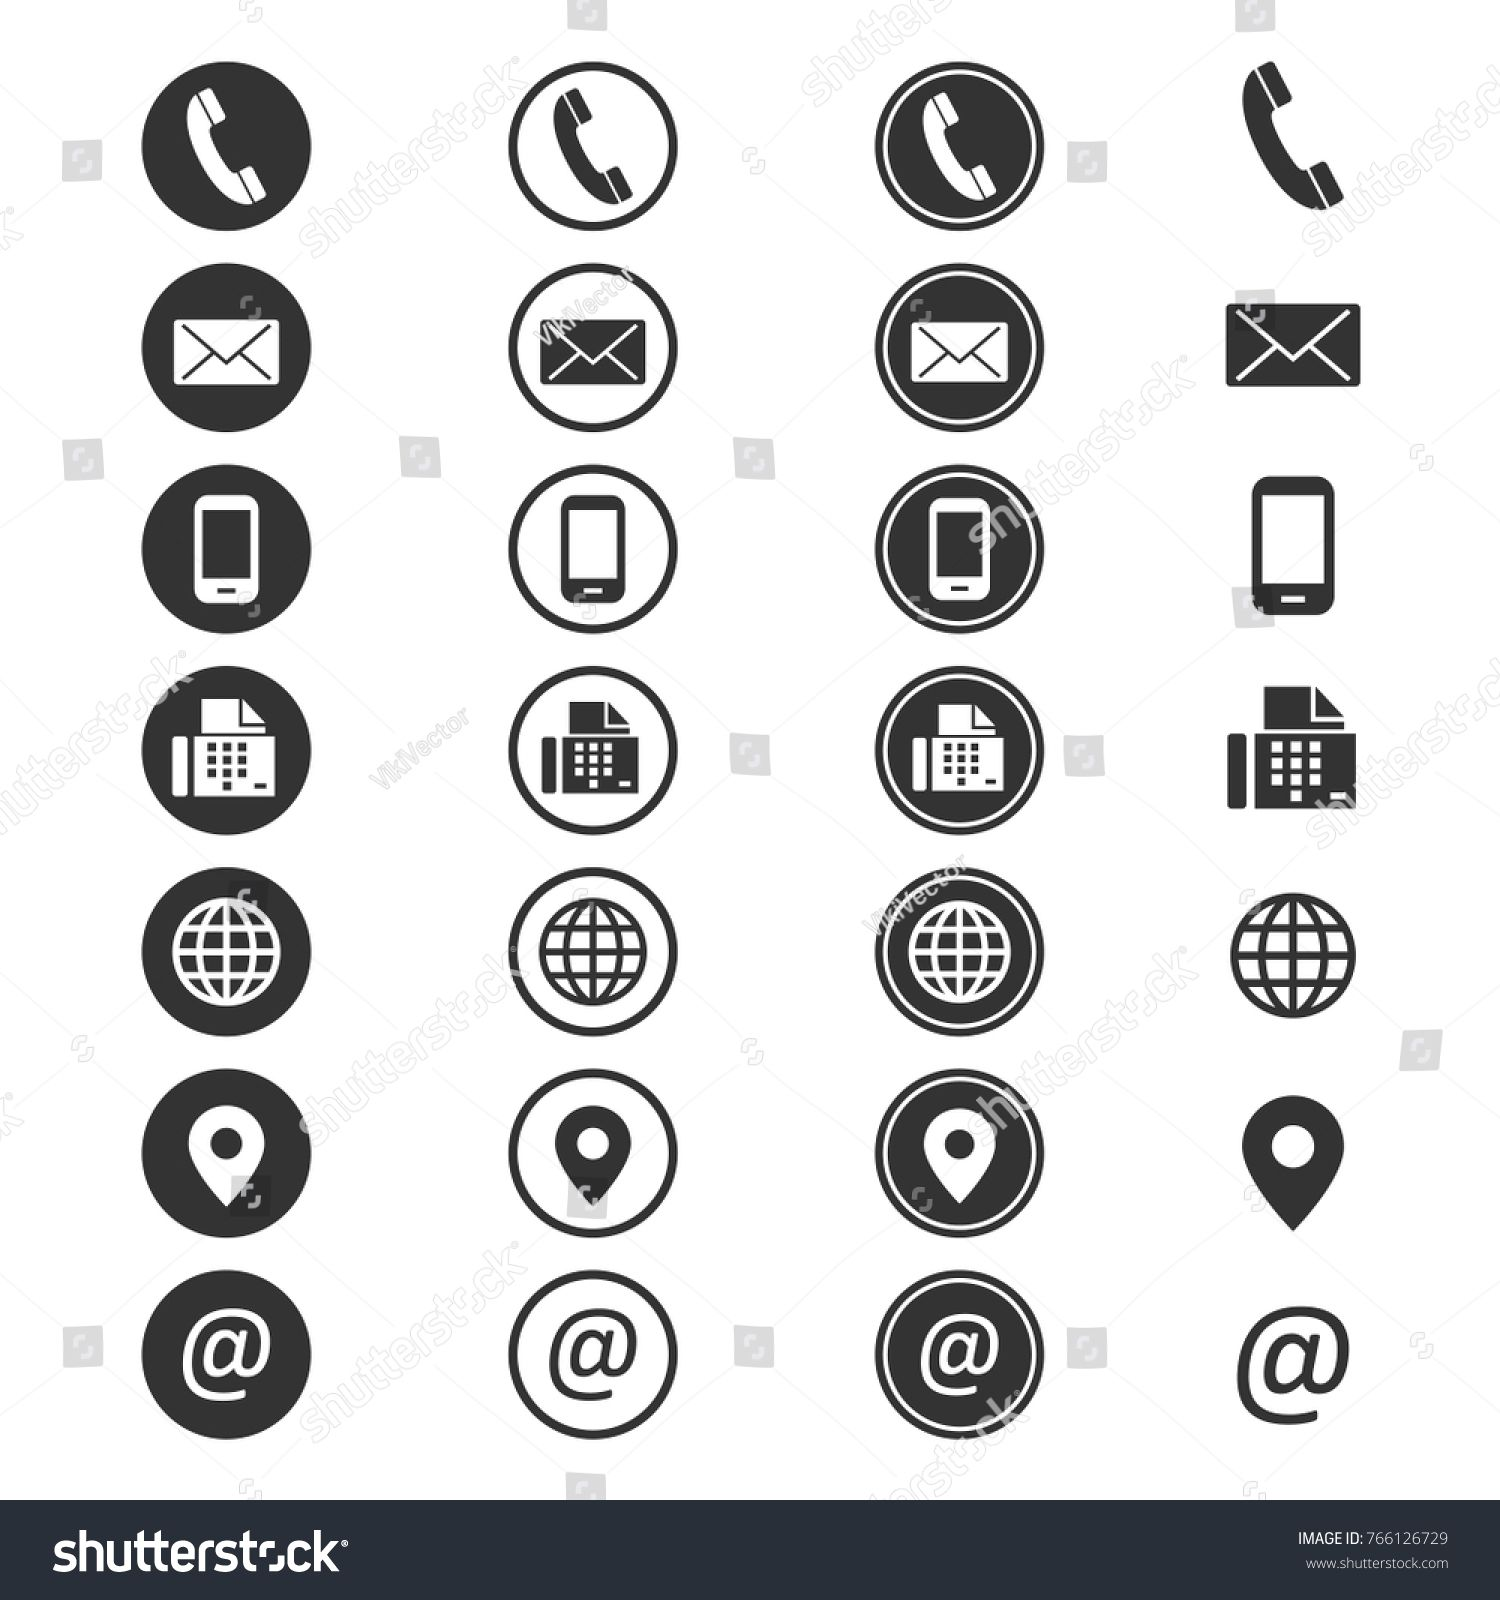 Contact info icon. Phone addressbook, button contacts of